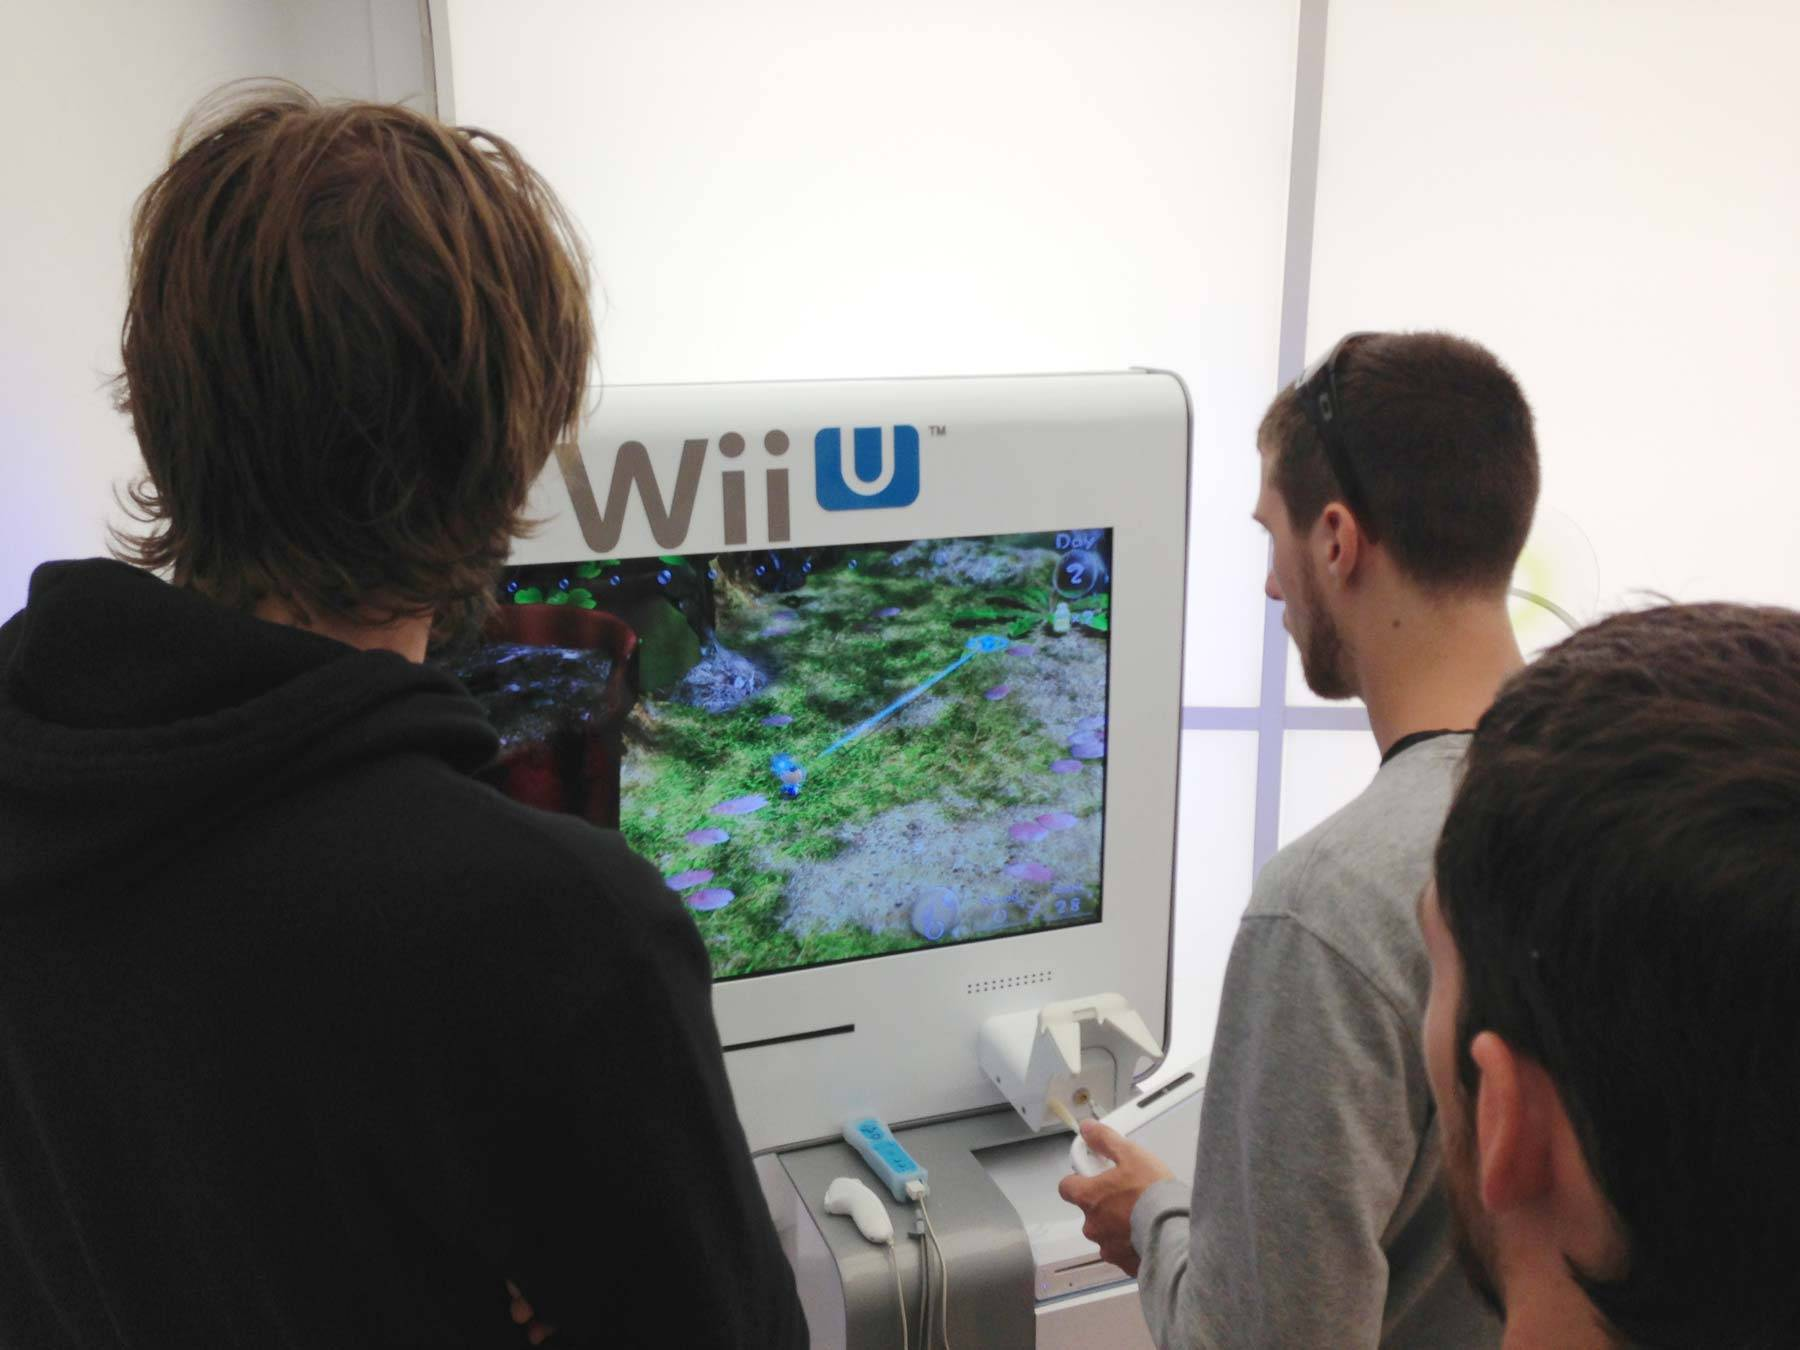 Butcher and Jared watch Irwin play Pikmin 3 on the Wii U